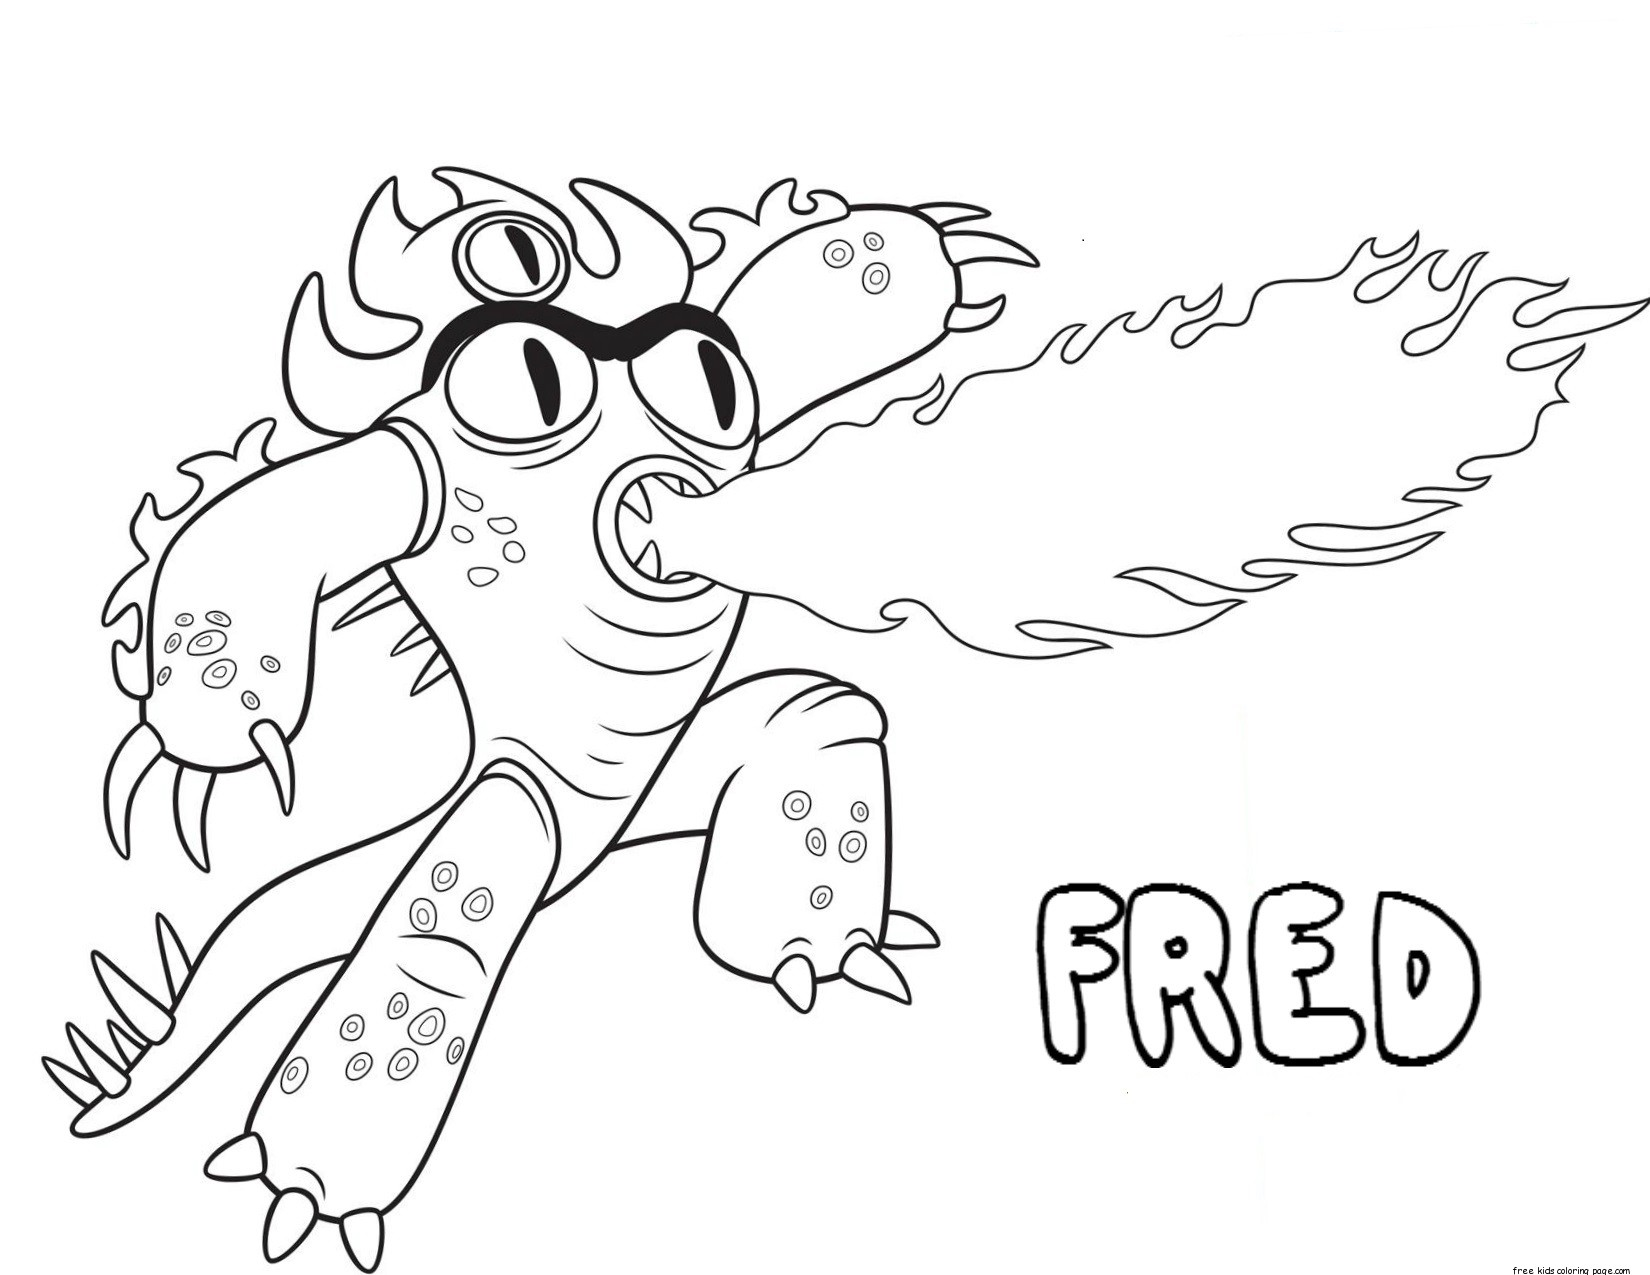 Printable big hero 6 coloring pages fred for kidsFree